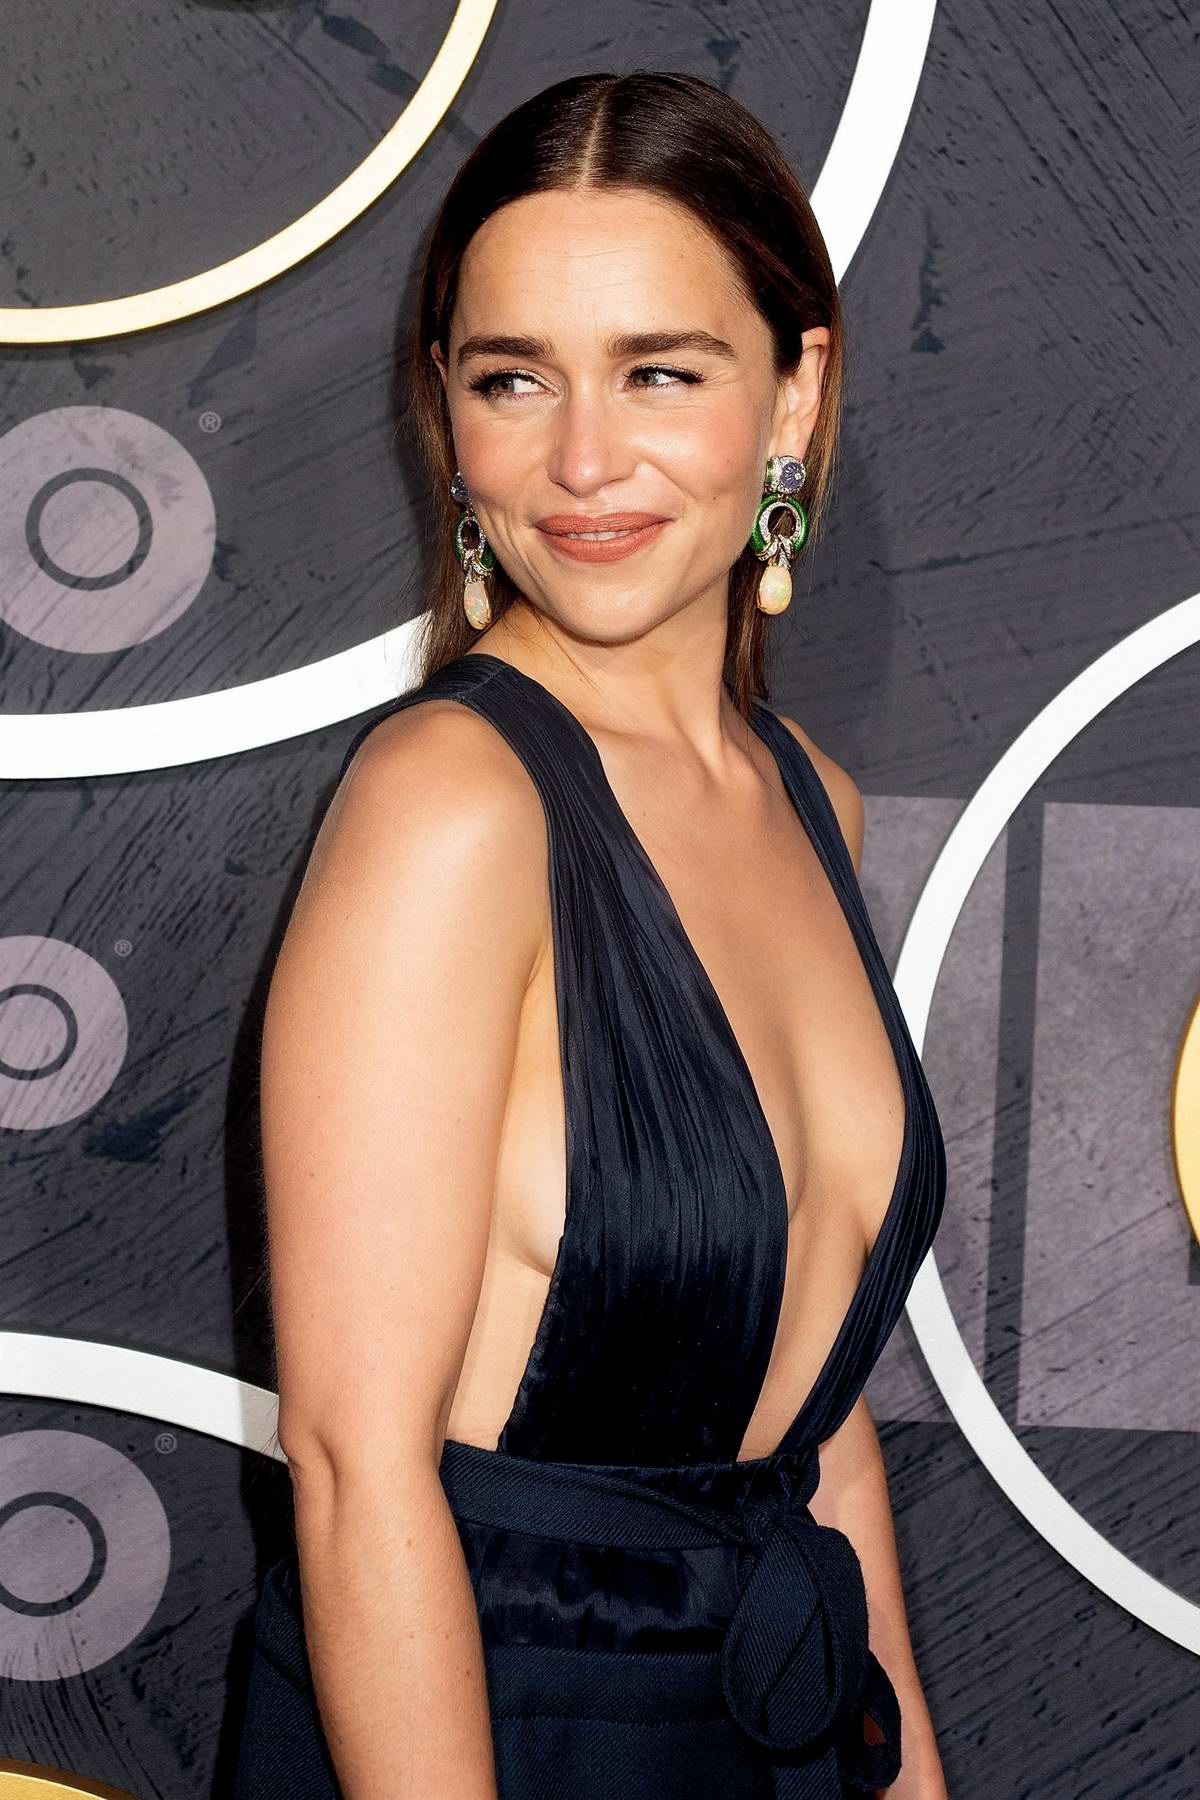 Most Beautiful English Actresses List 2019 / Hottest